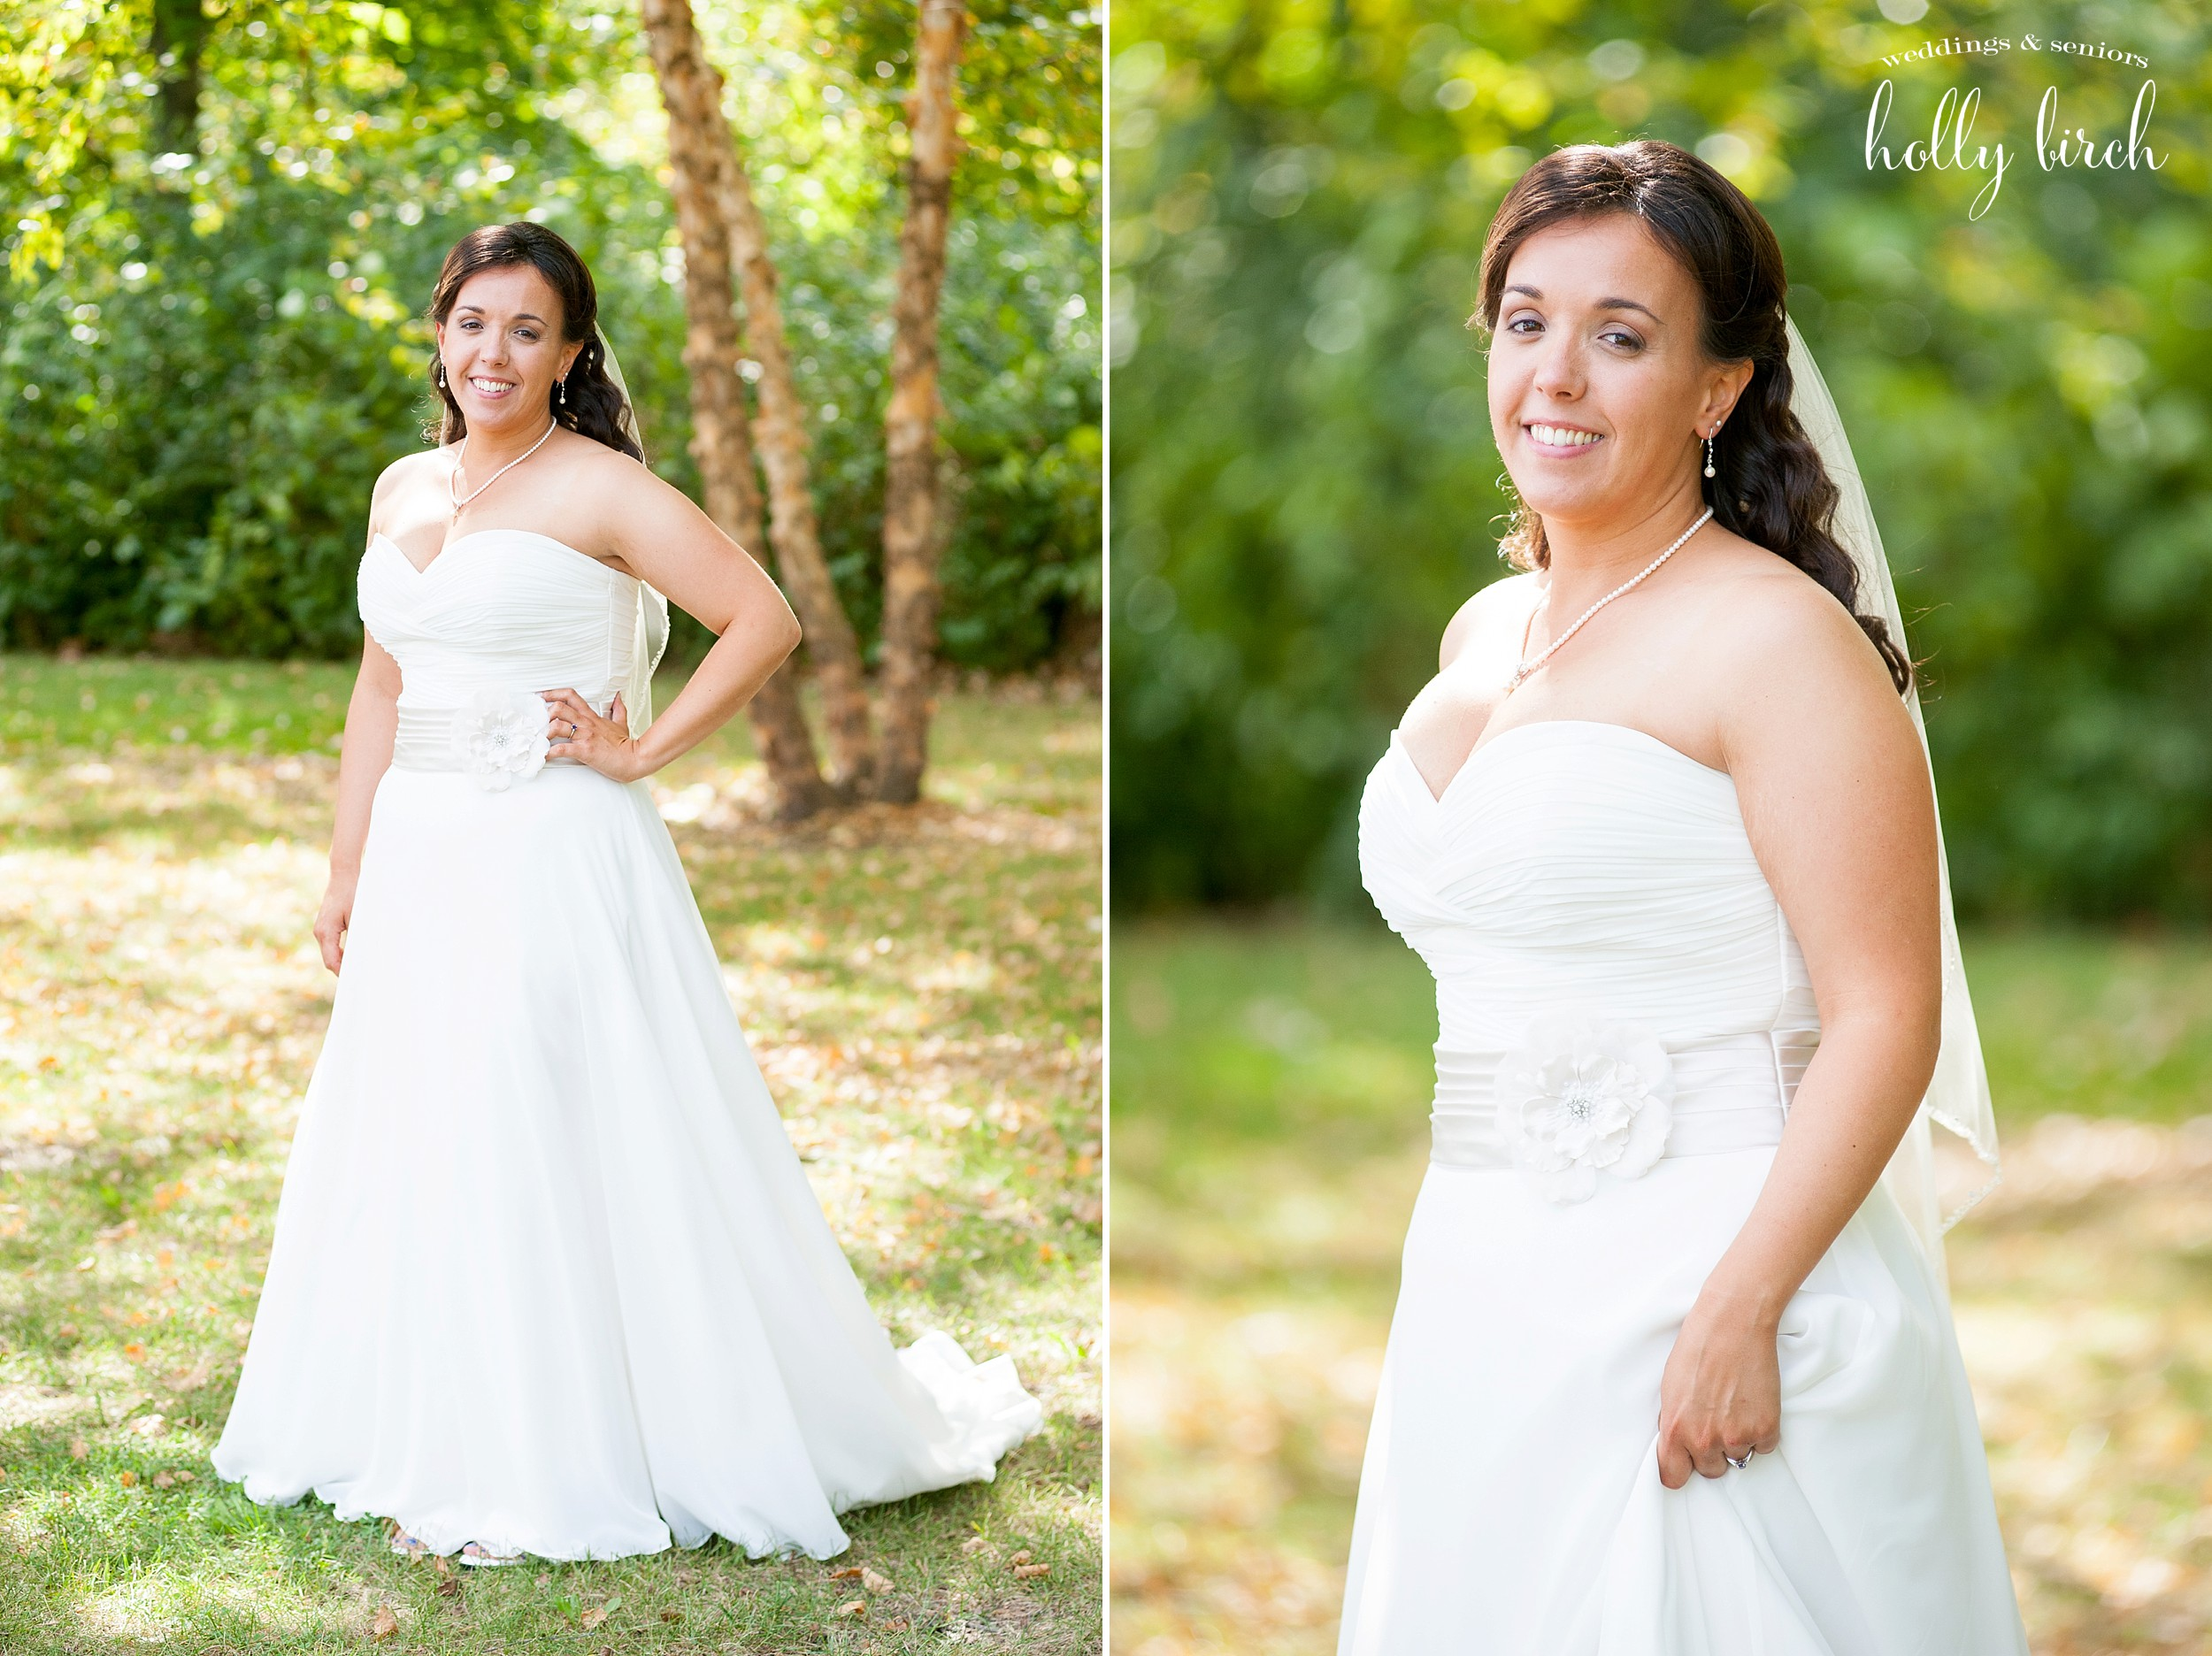 Bridal portraits with sunlight